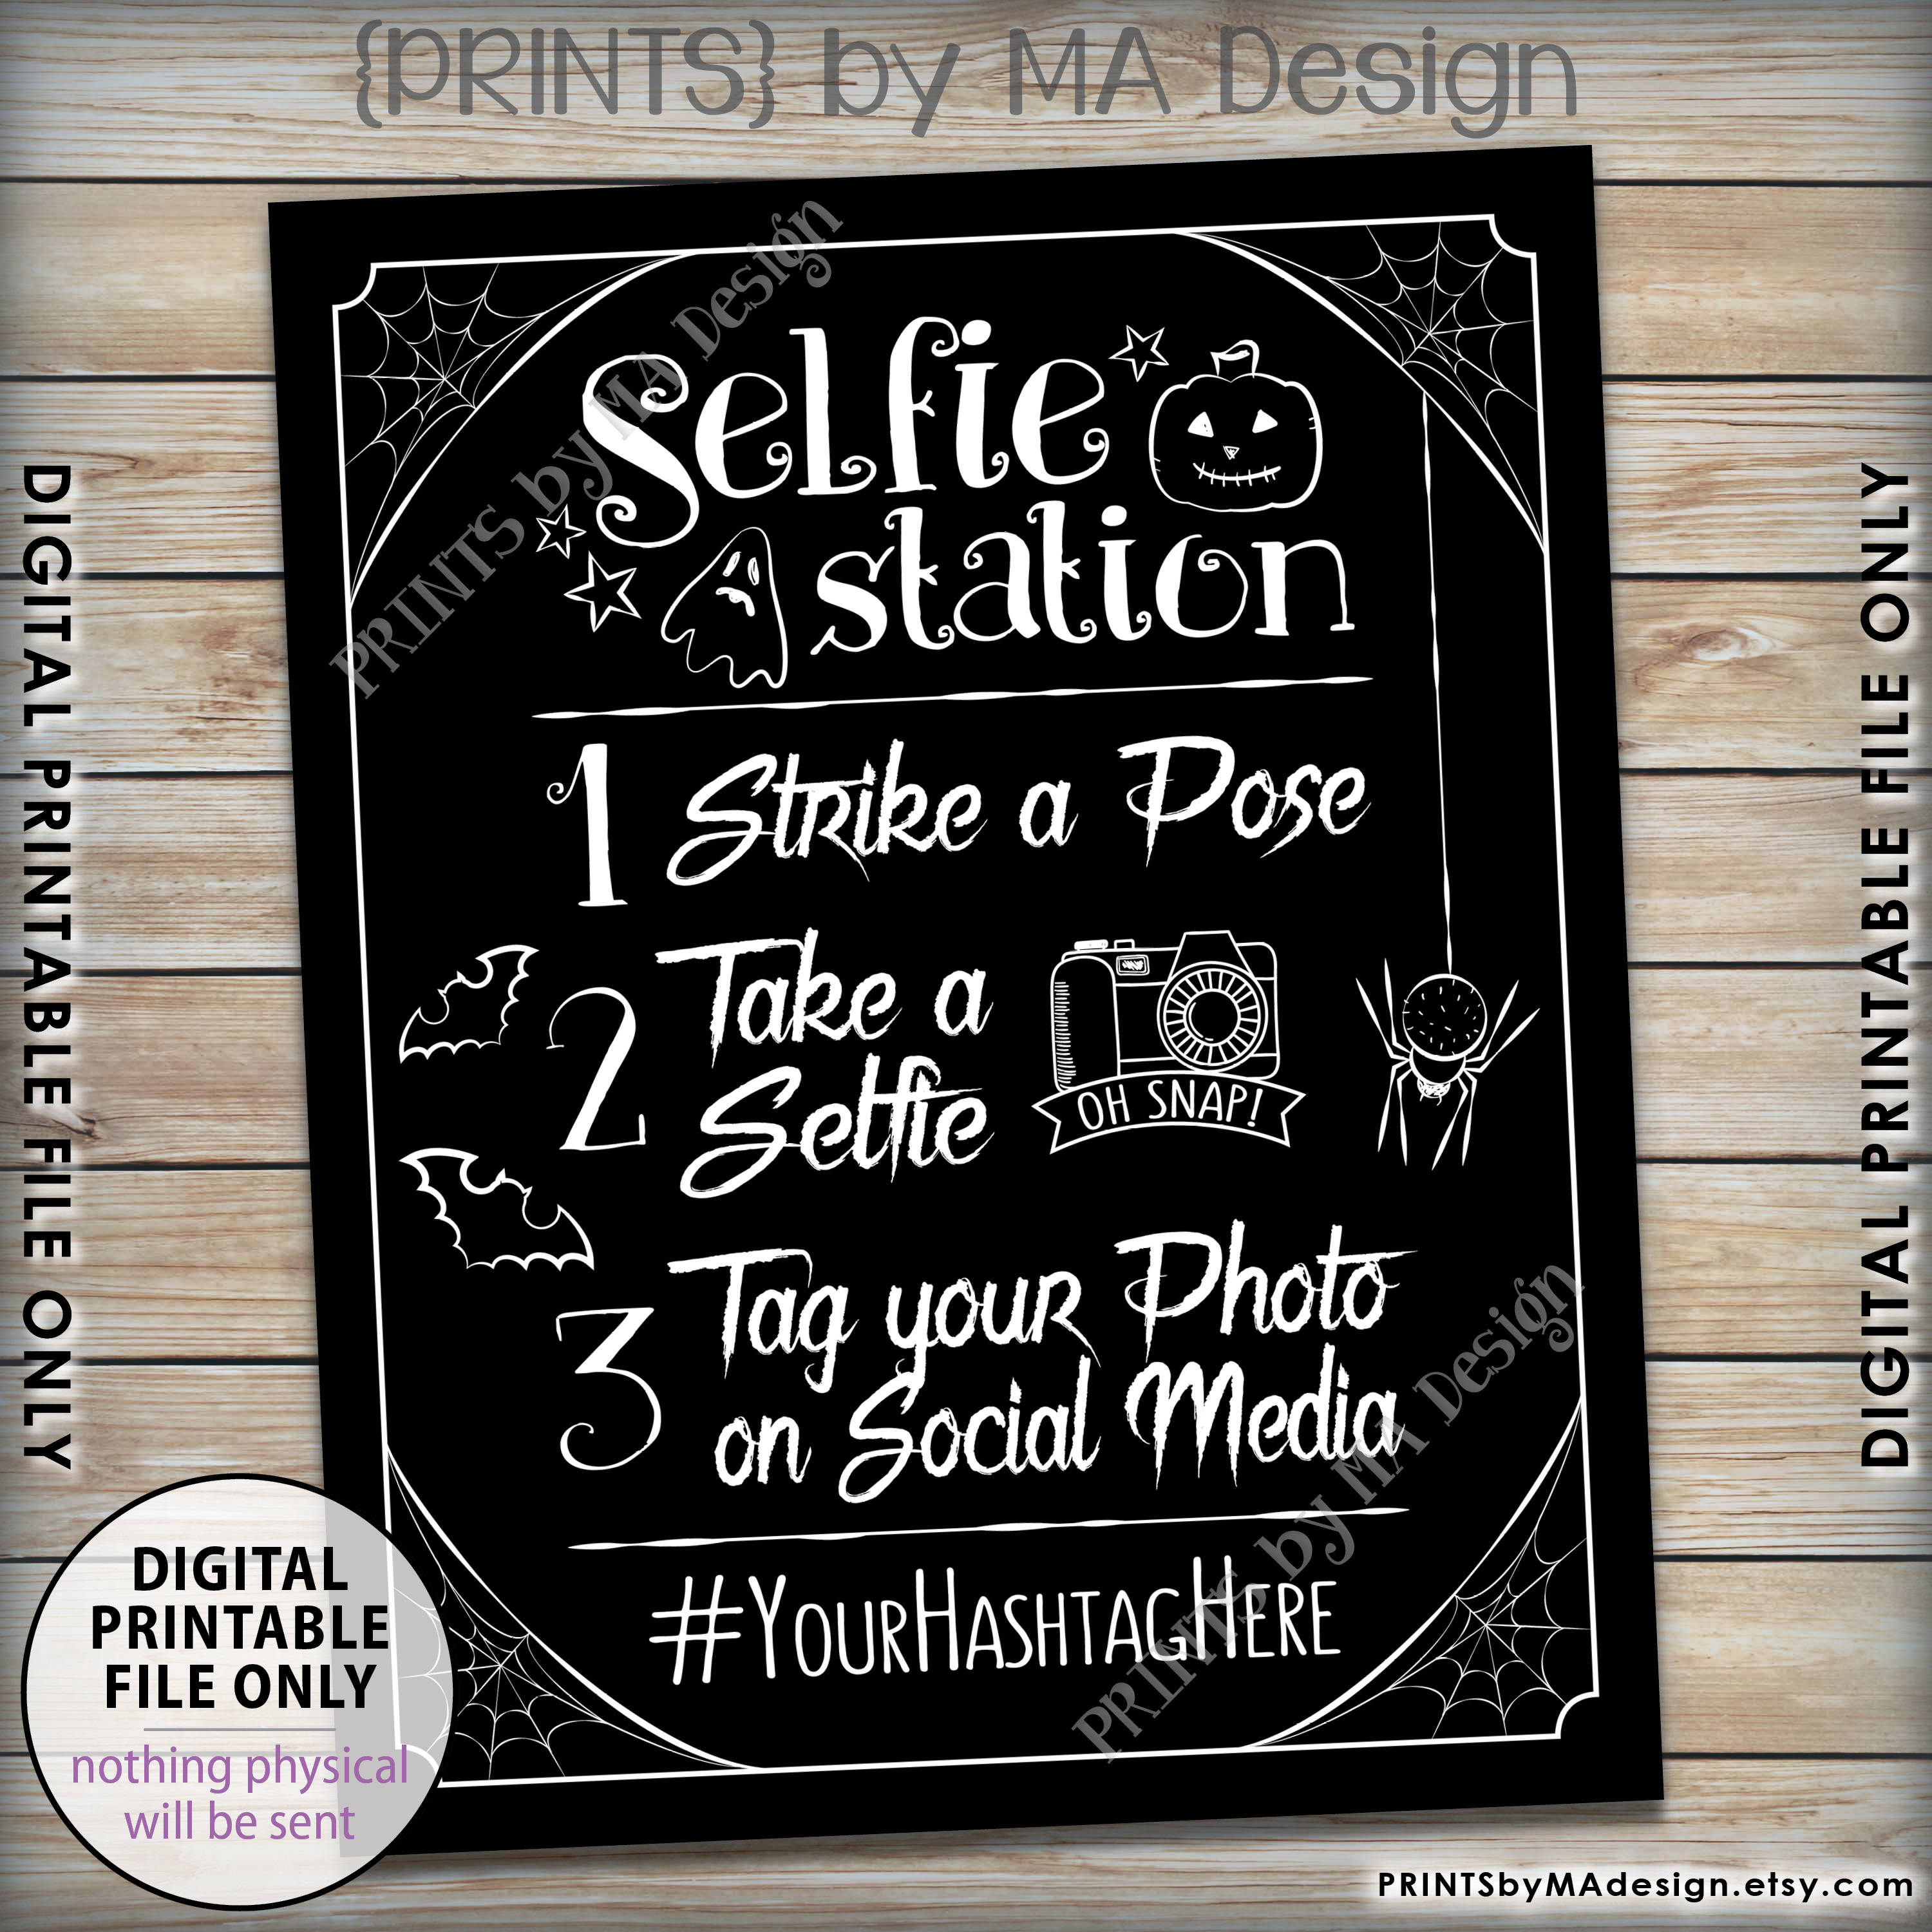 Halloween Selfie Station Sign, Spooky Hashtag Sign, Tag Your Photo - Selfie Station Free Printable